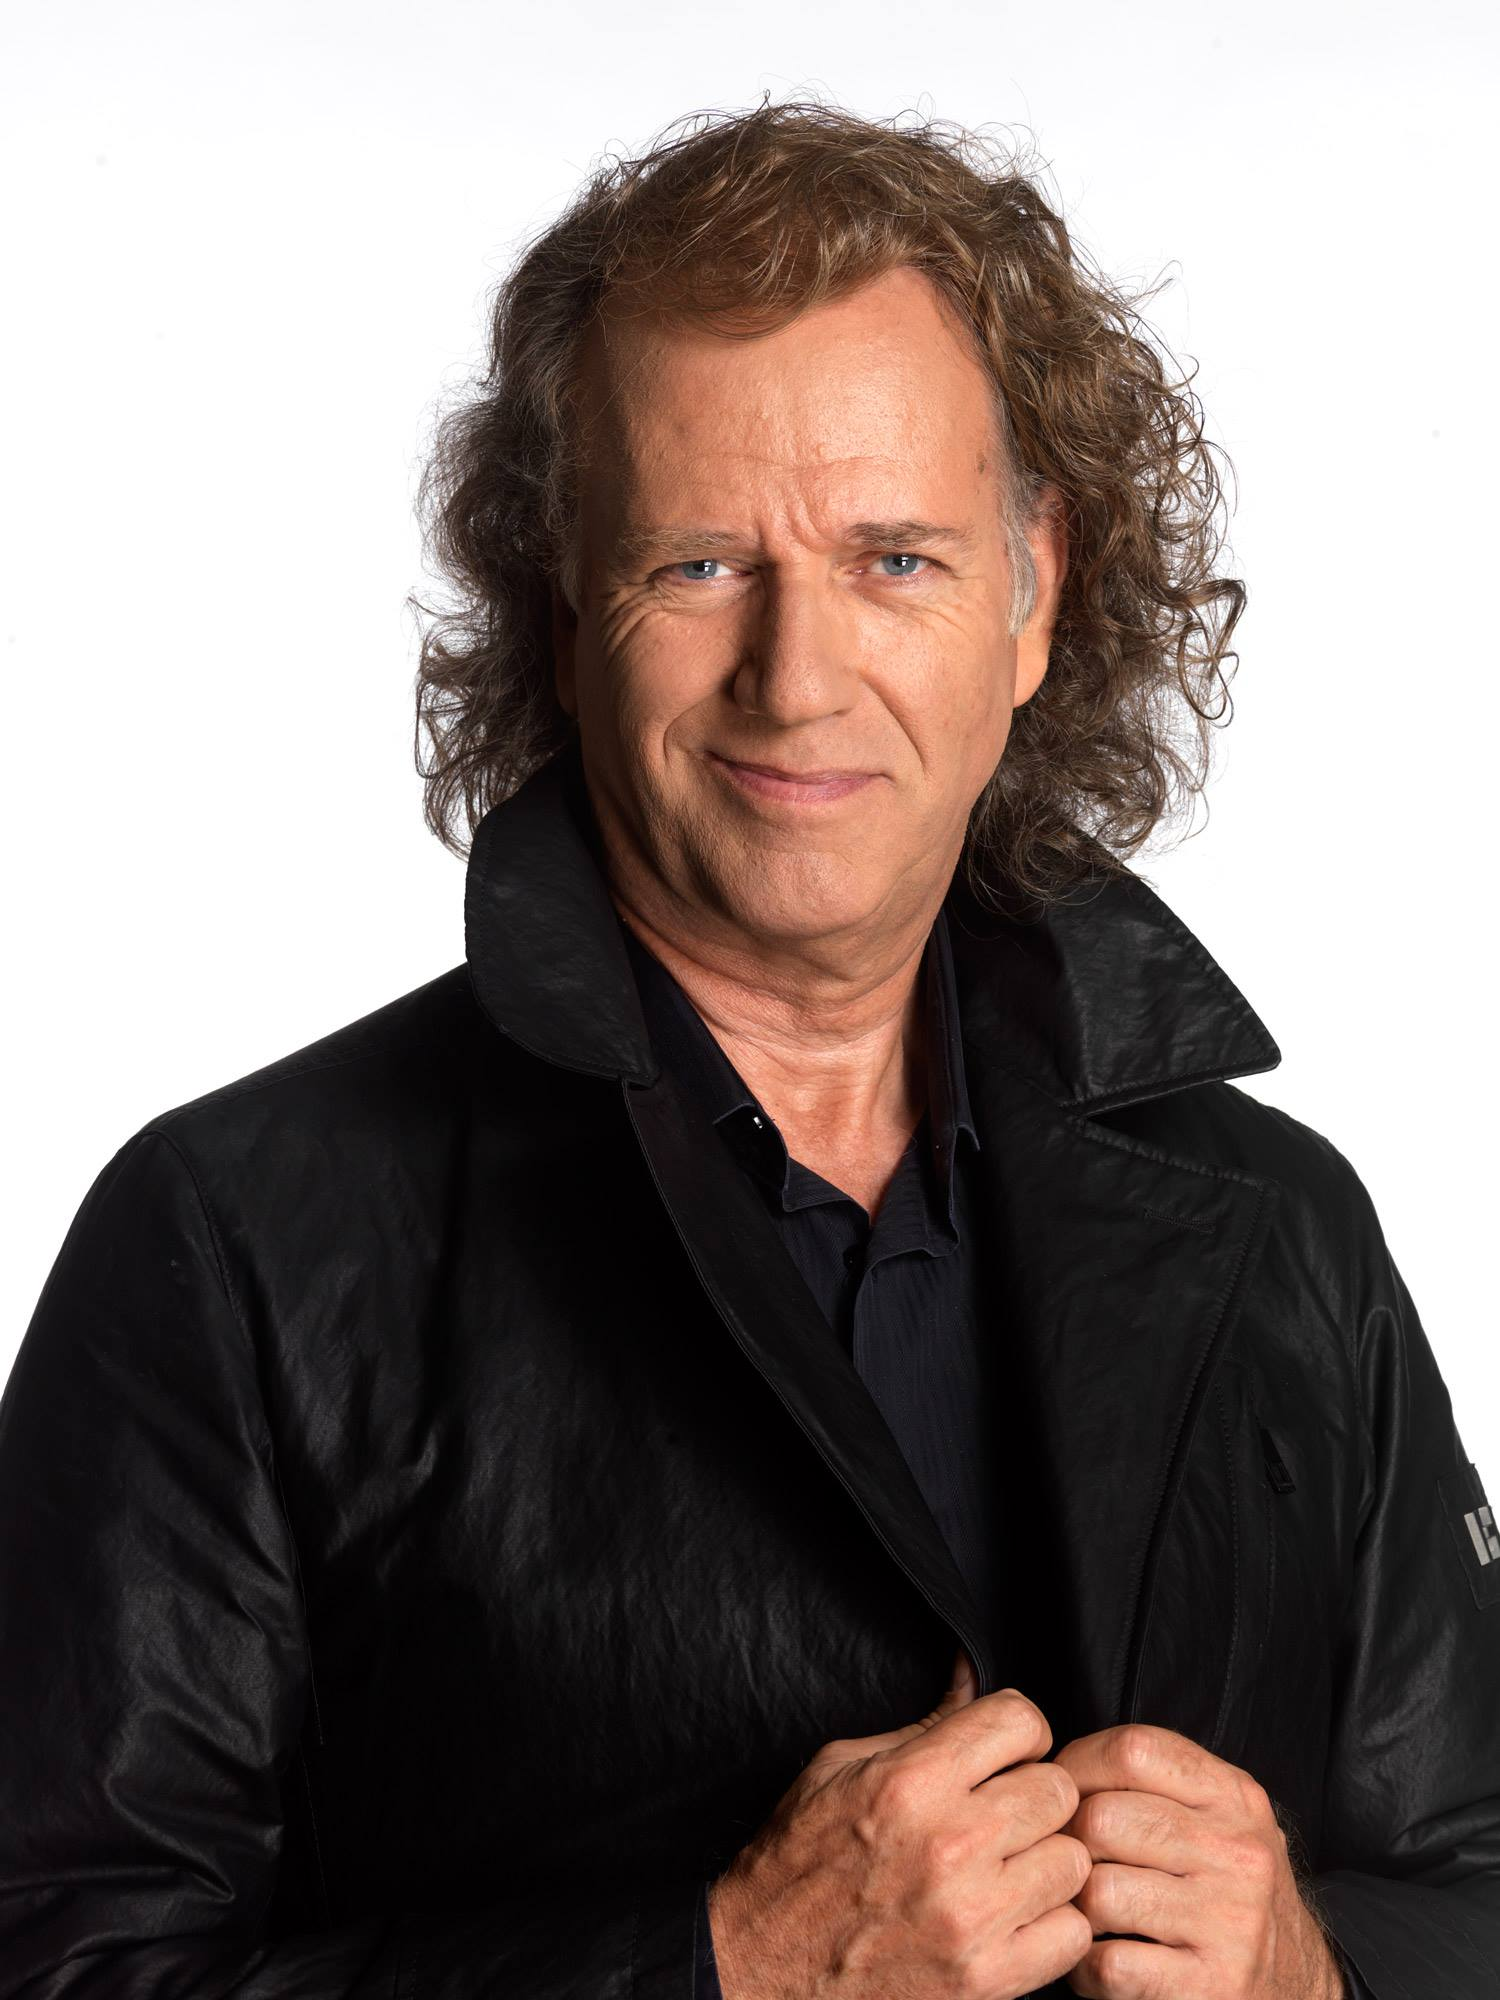 where was andre rieu christmas in london recorded